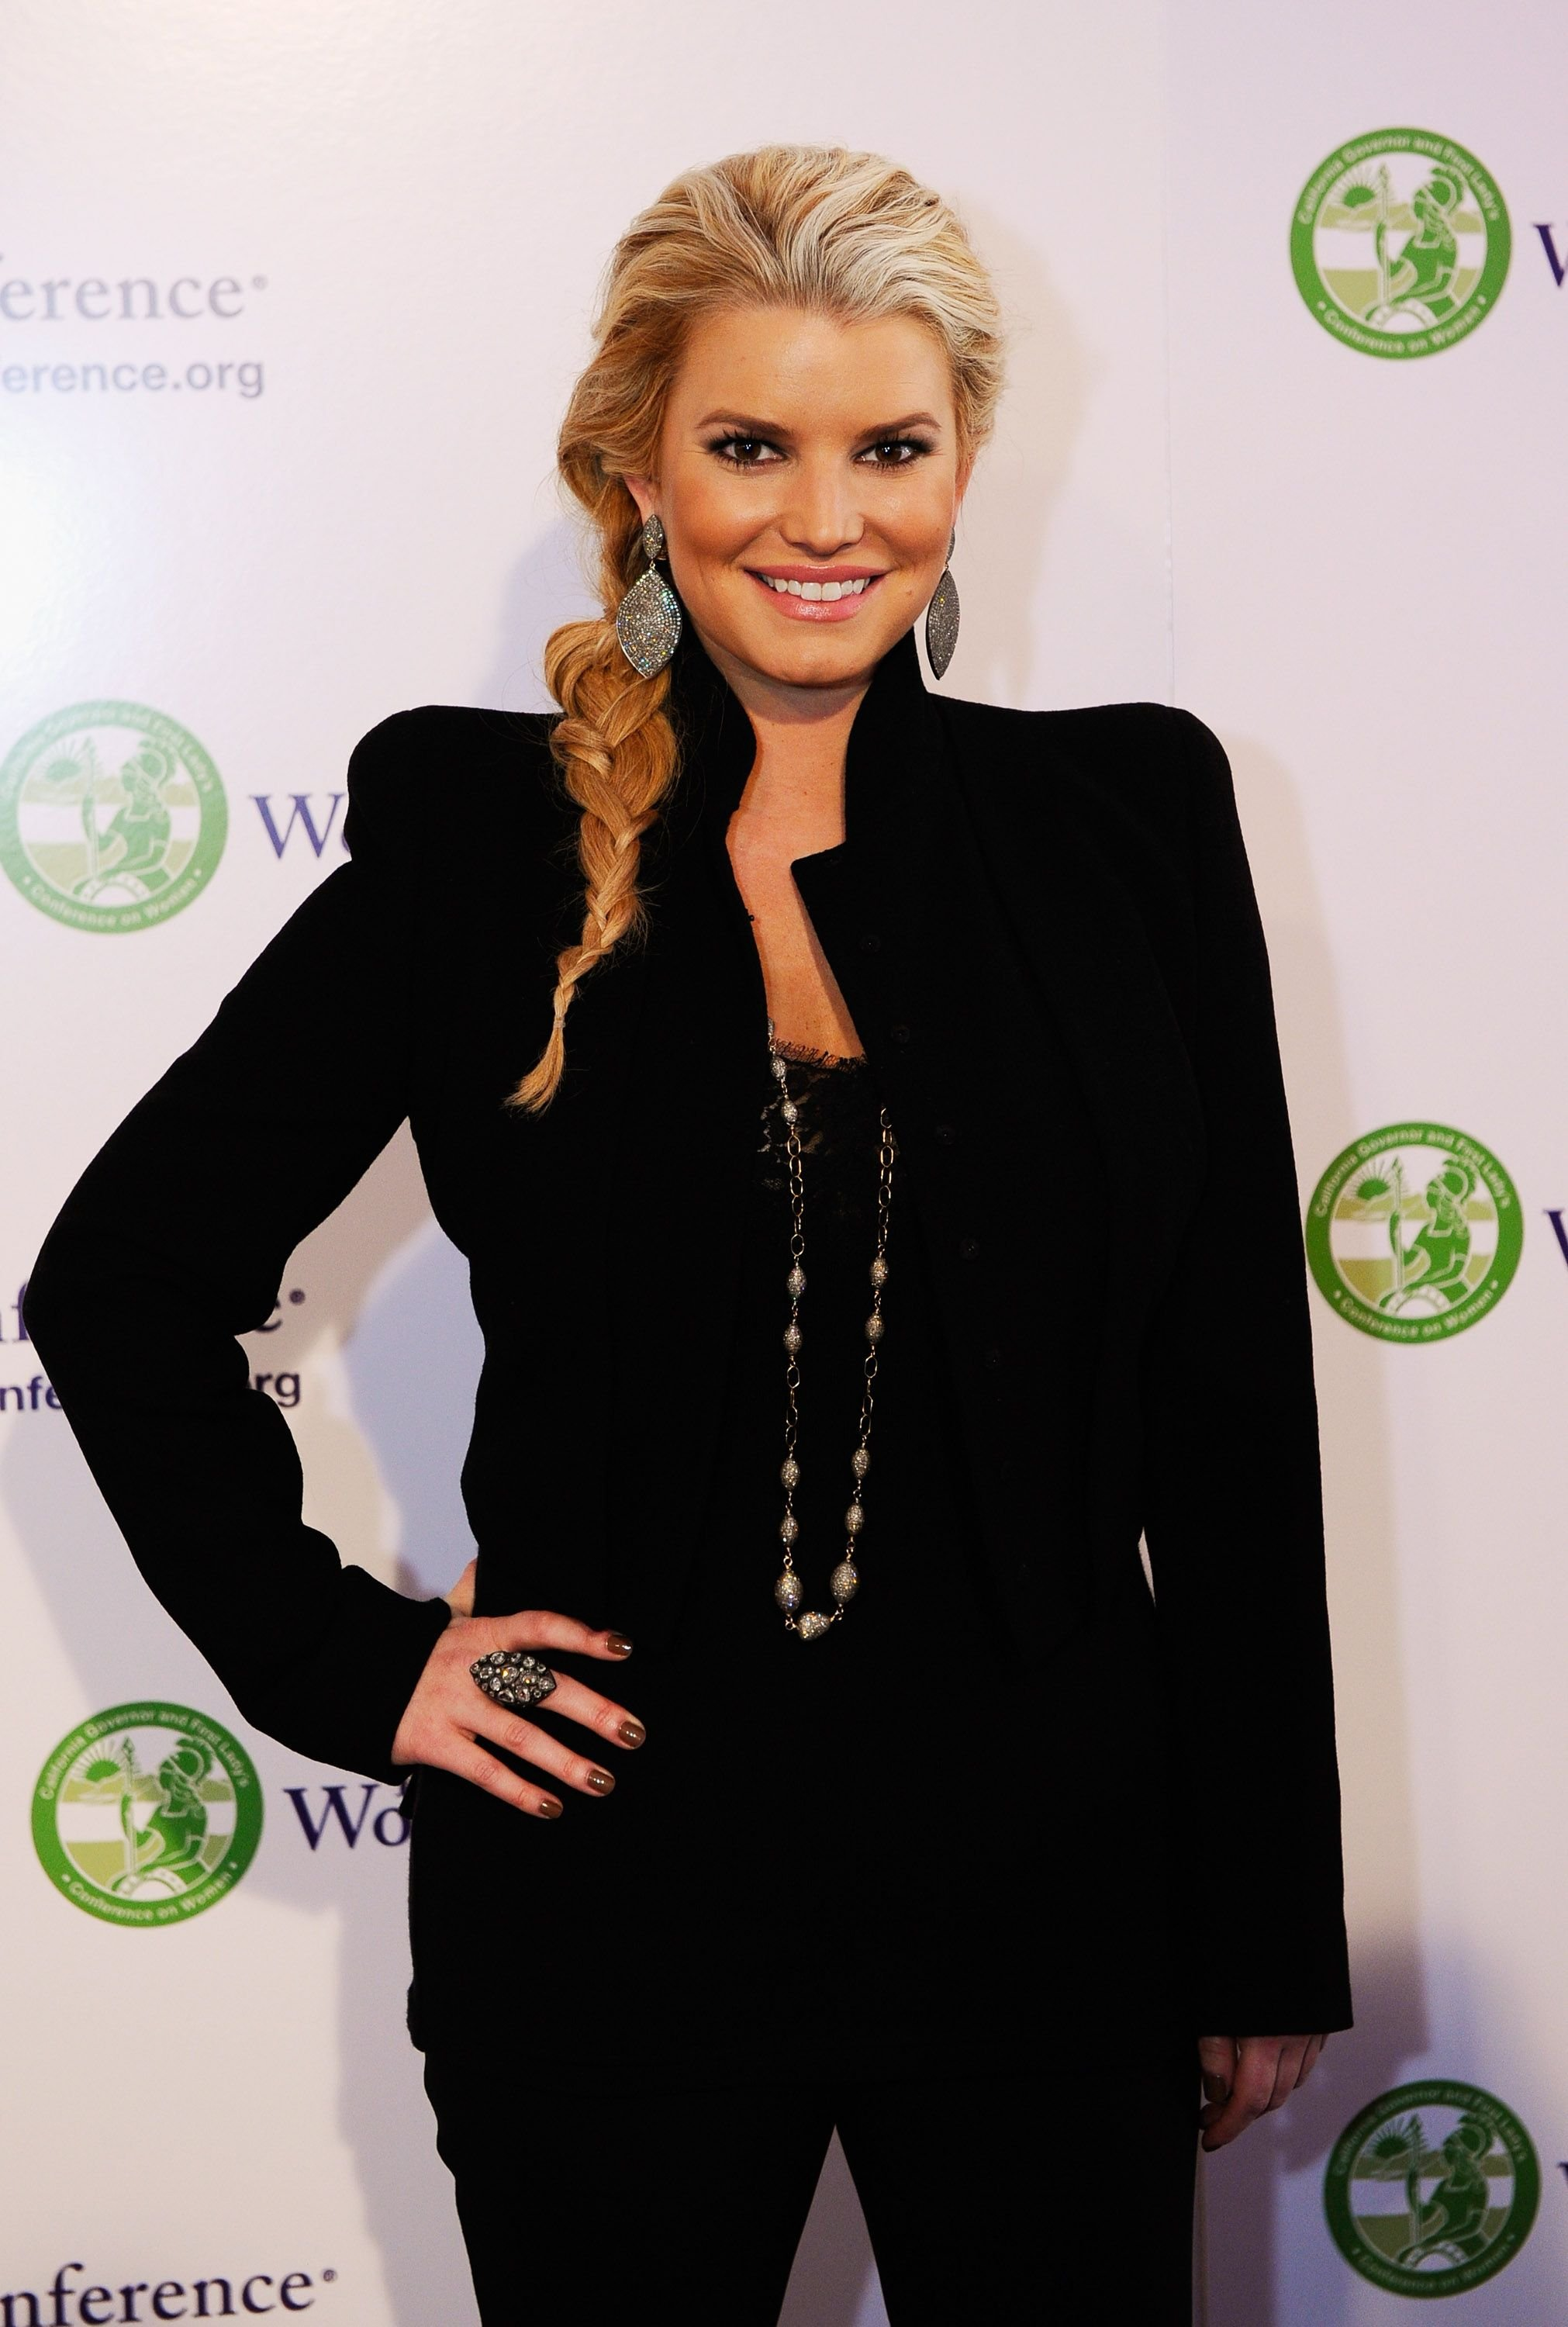 Jessica Simpson arrives California first lady Maria Shriver's annual Women's Conference 2010 on October 26, 2010 at the Long Beach Convention Center in Long Beach, California. | Source: Getty Images